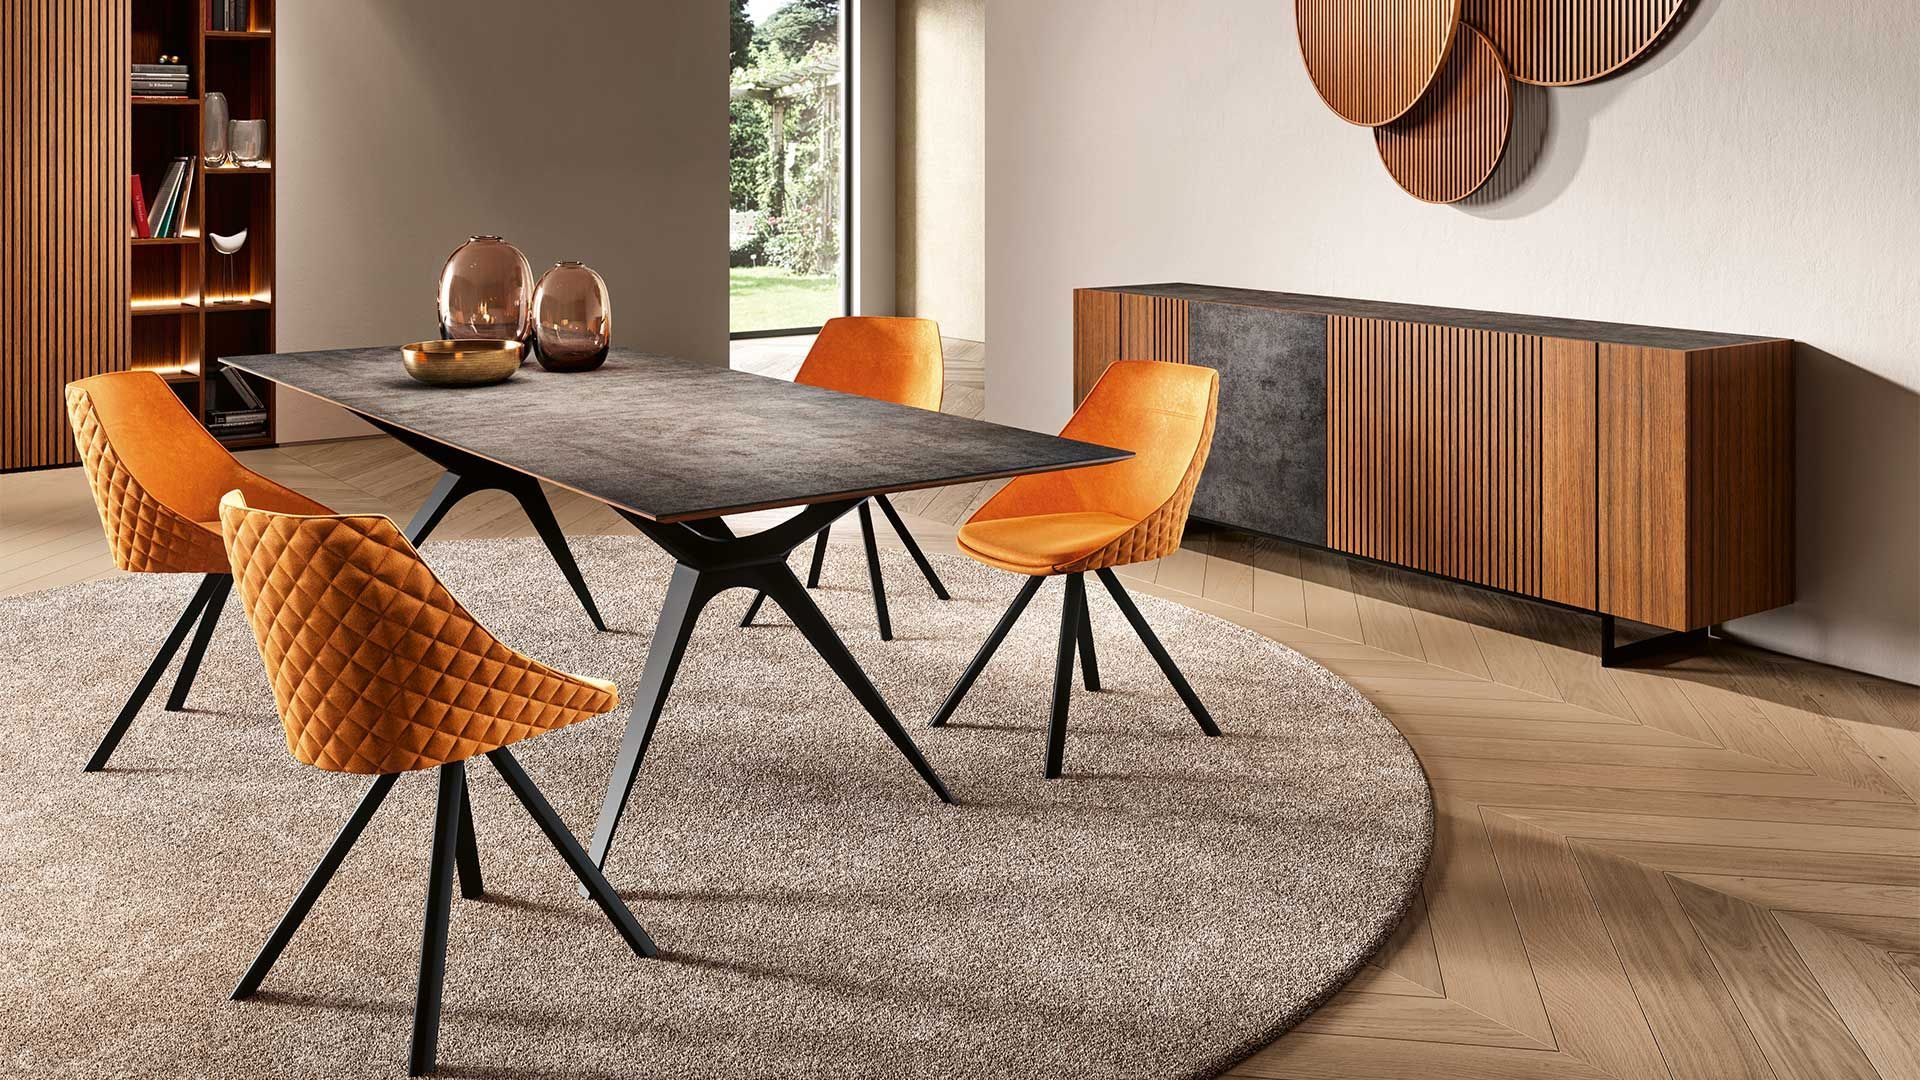 Piana Collection Chene Fume Et Ceramique Mobilier De France Table Ceramique Extensible Mobilier De Salon